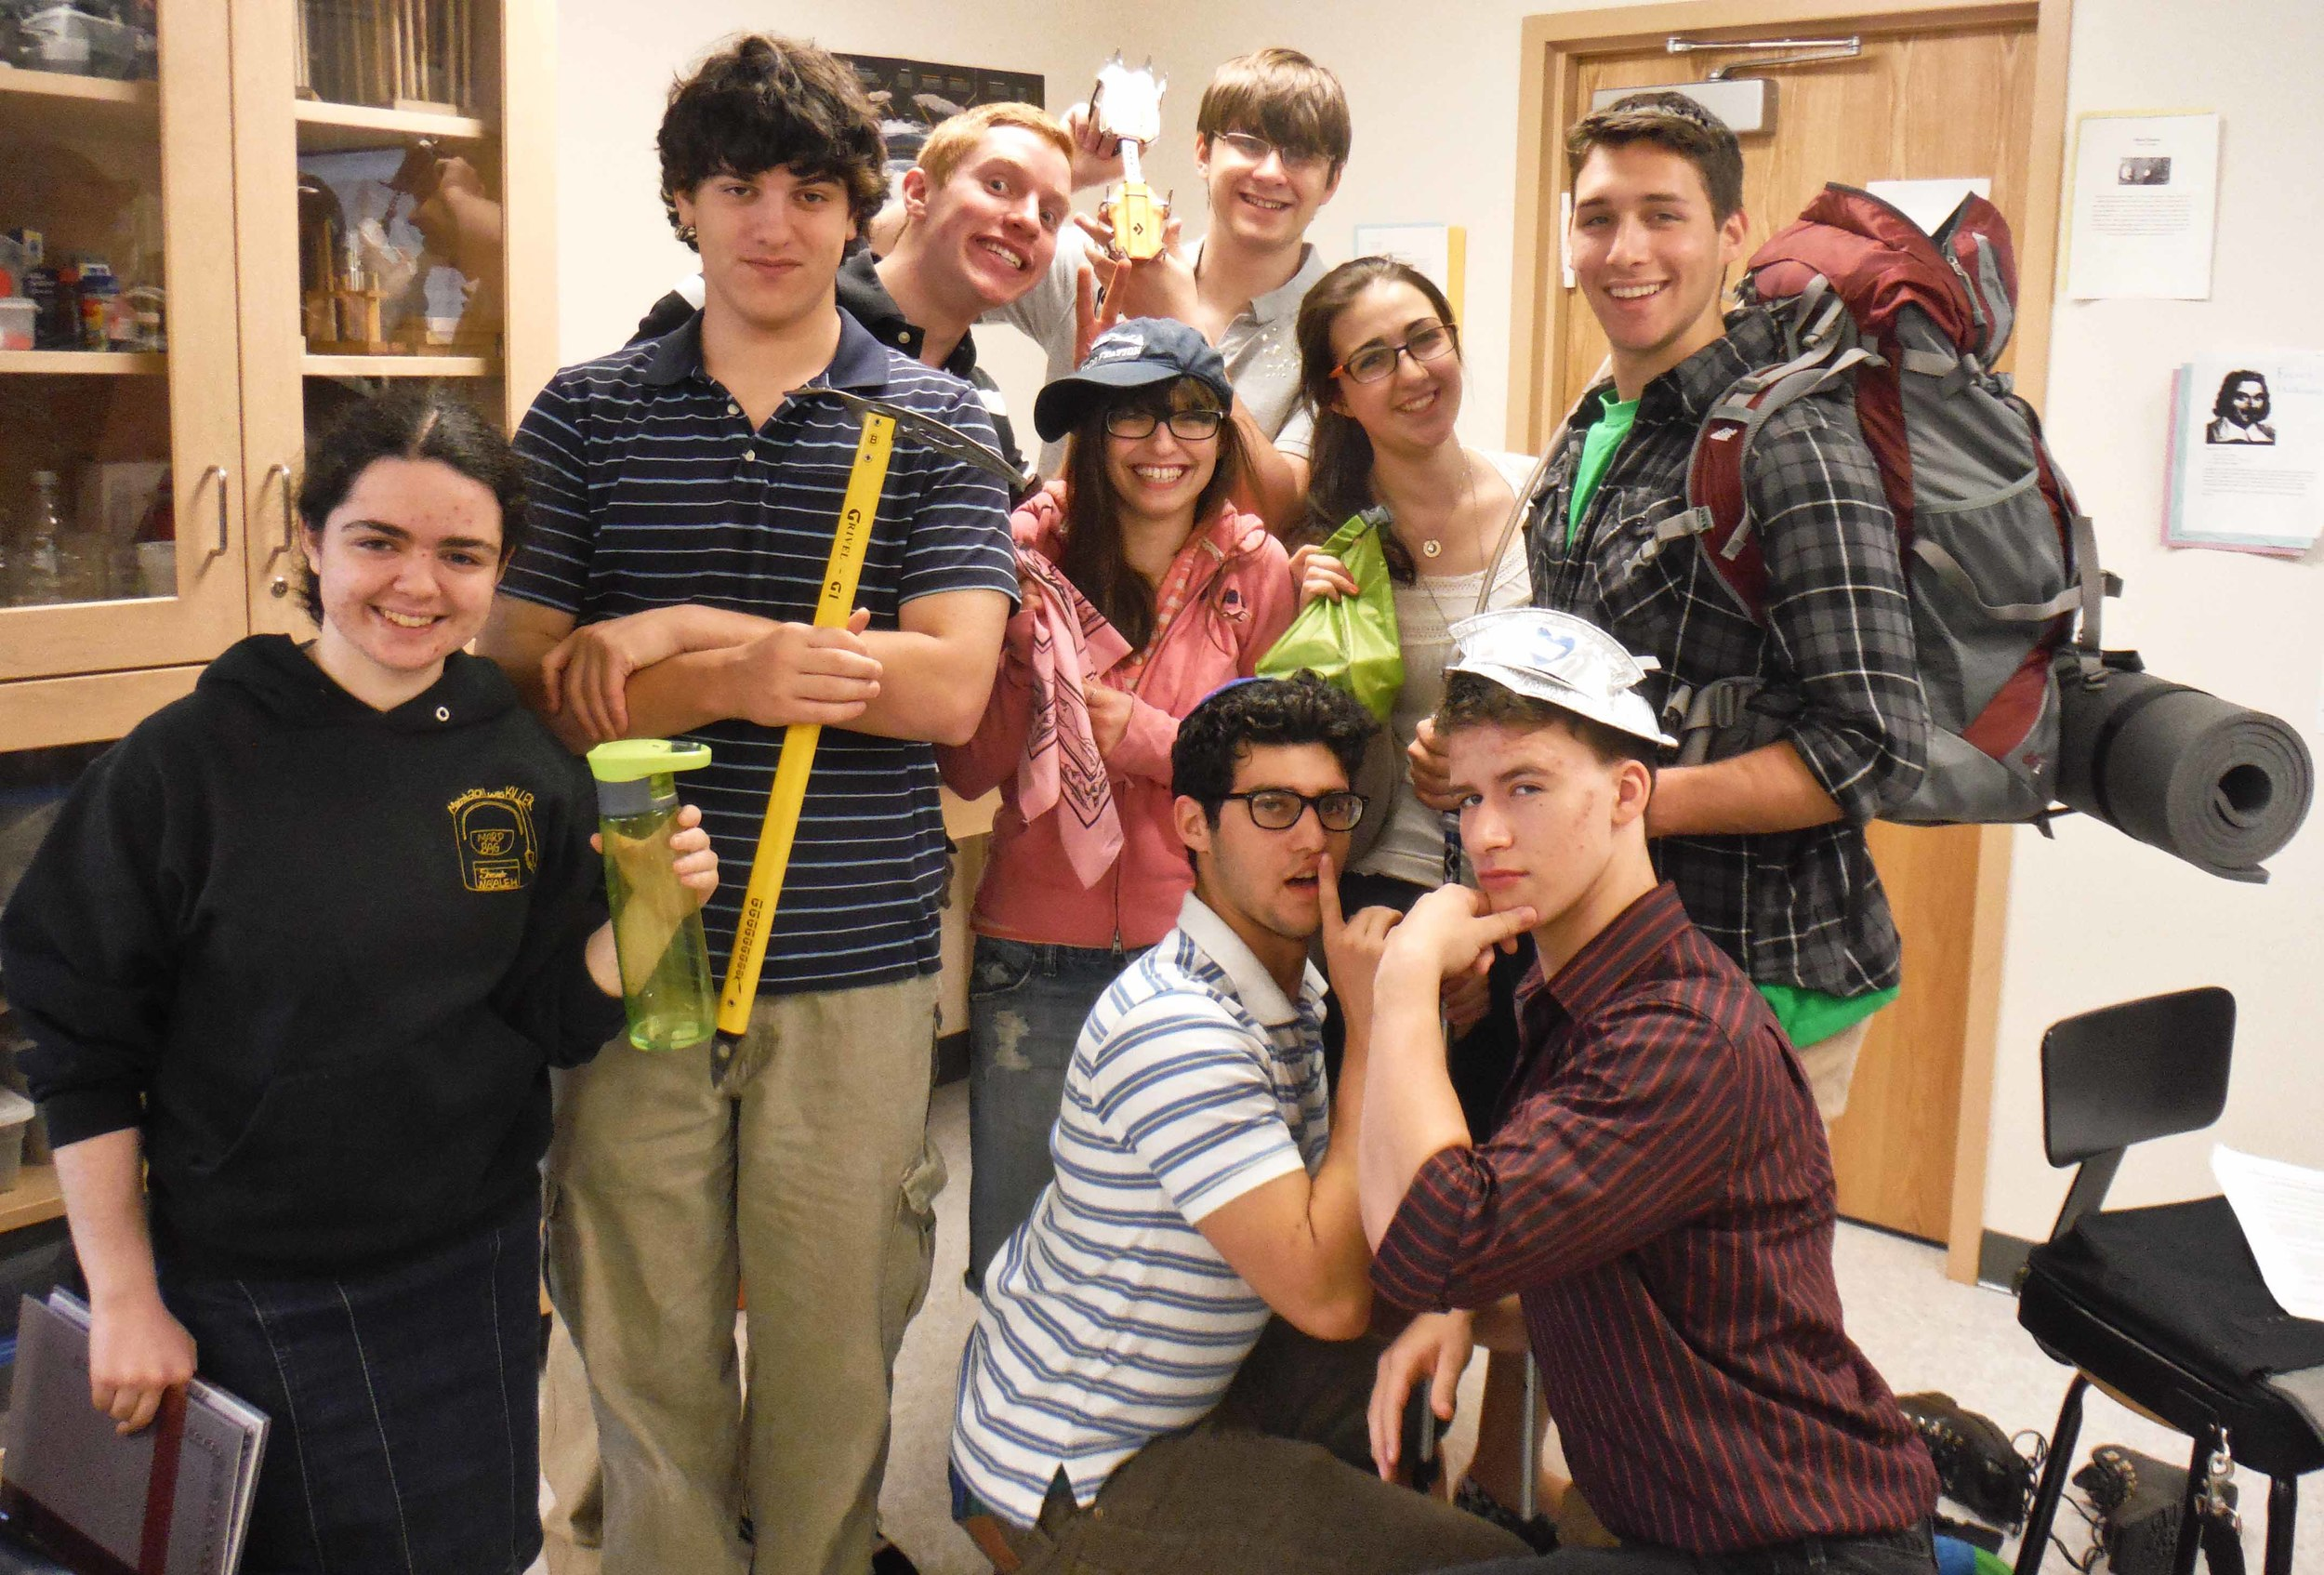 Sarah's students (future JIRPers?) pose with a selection of her gear.